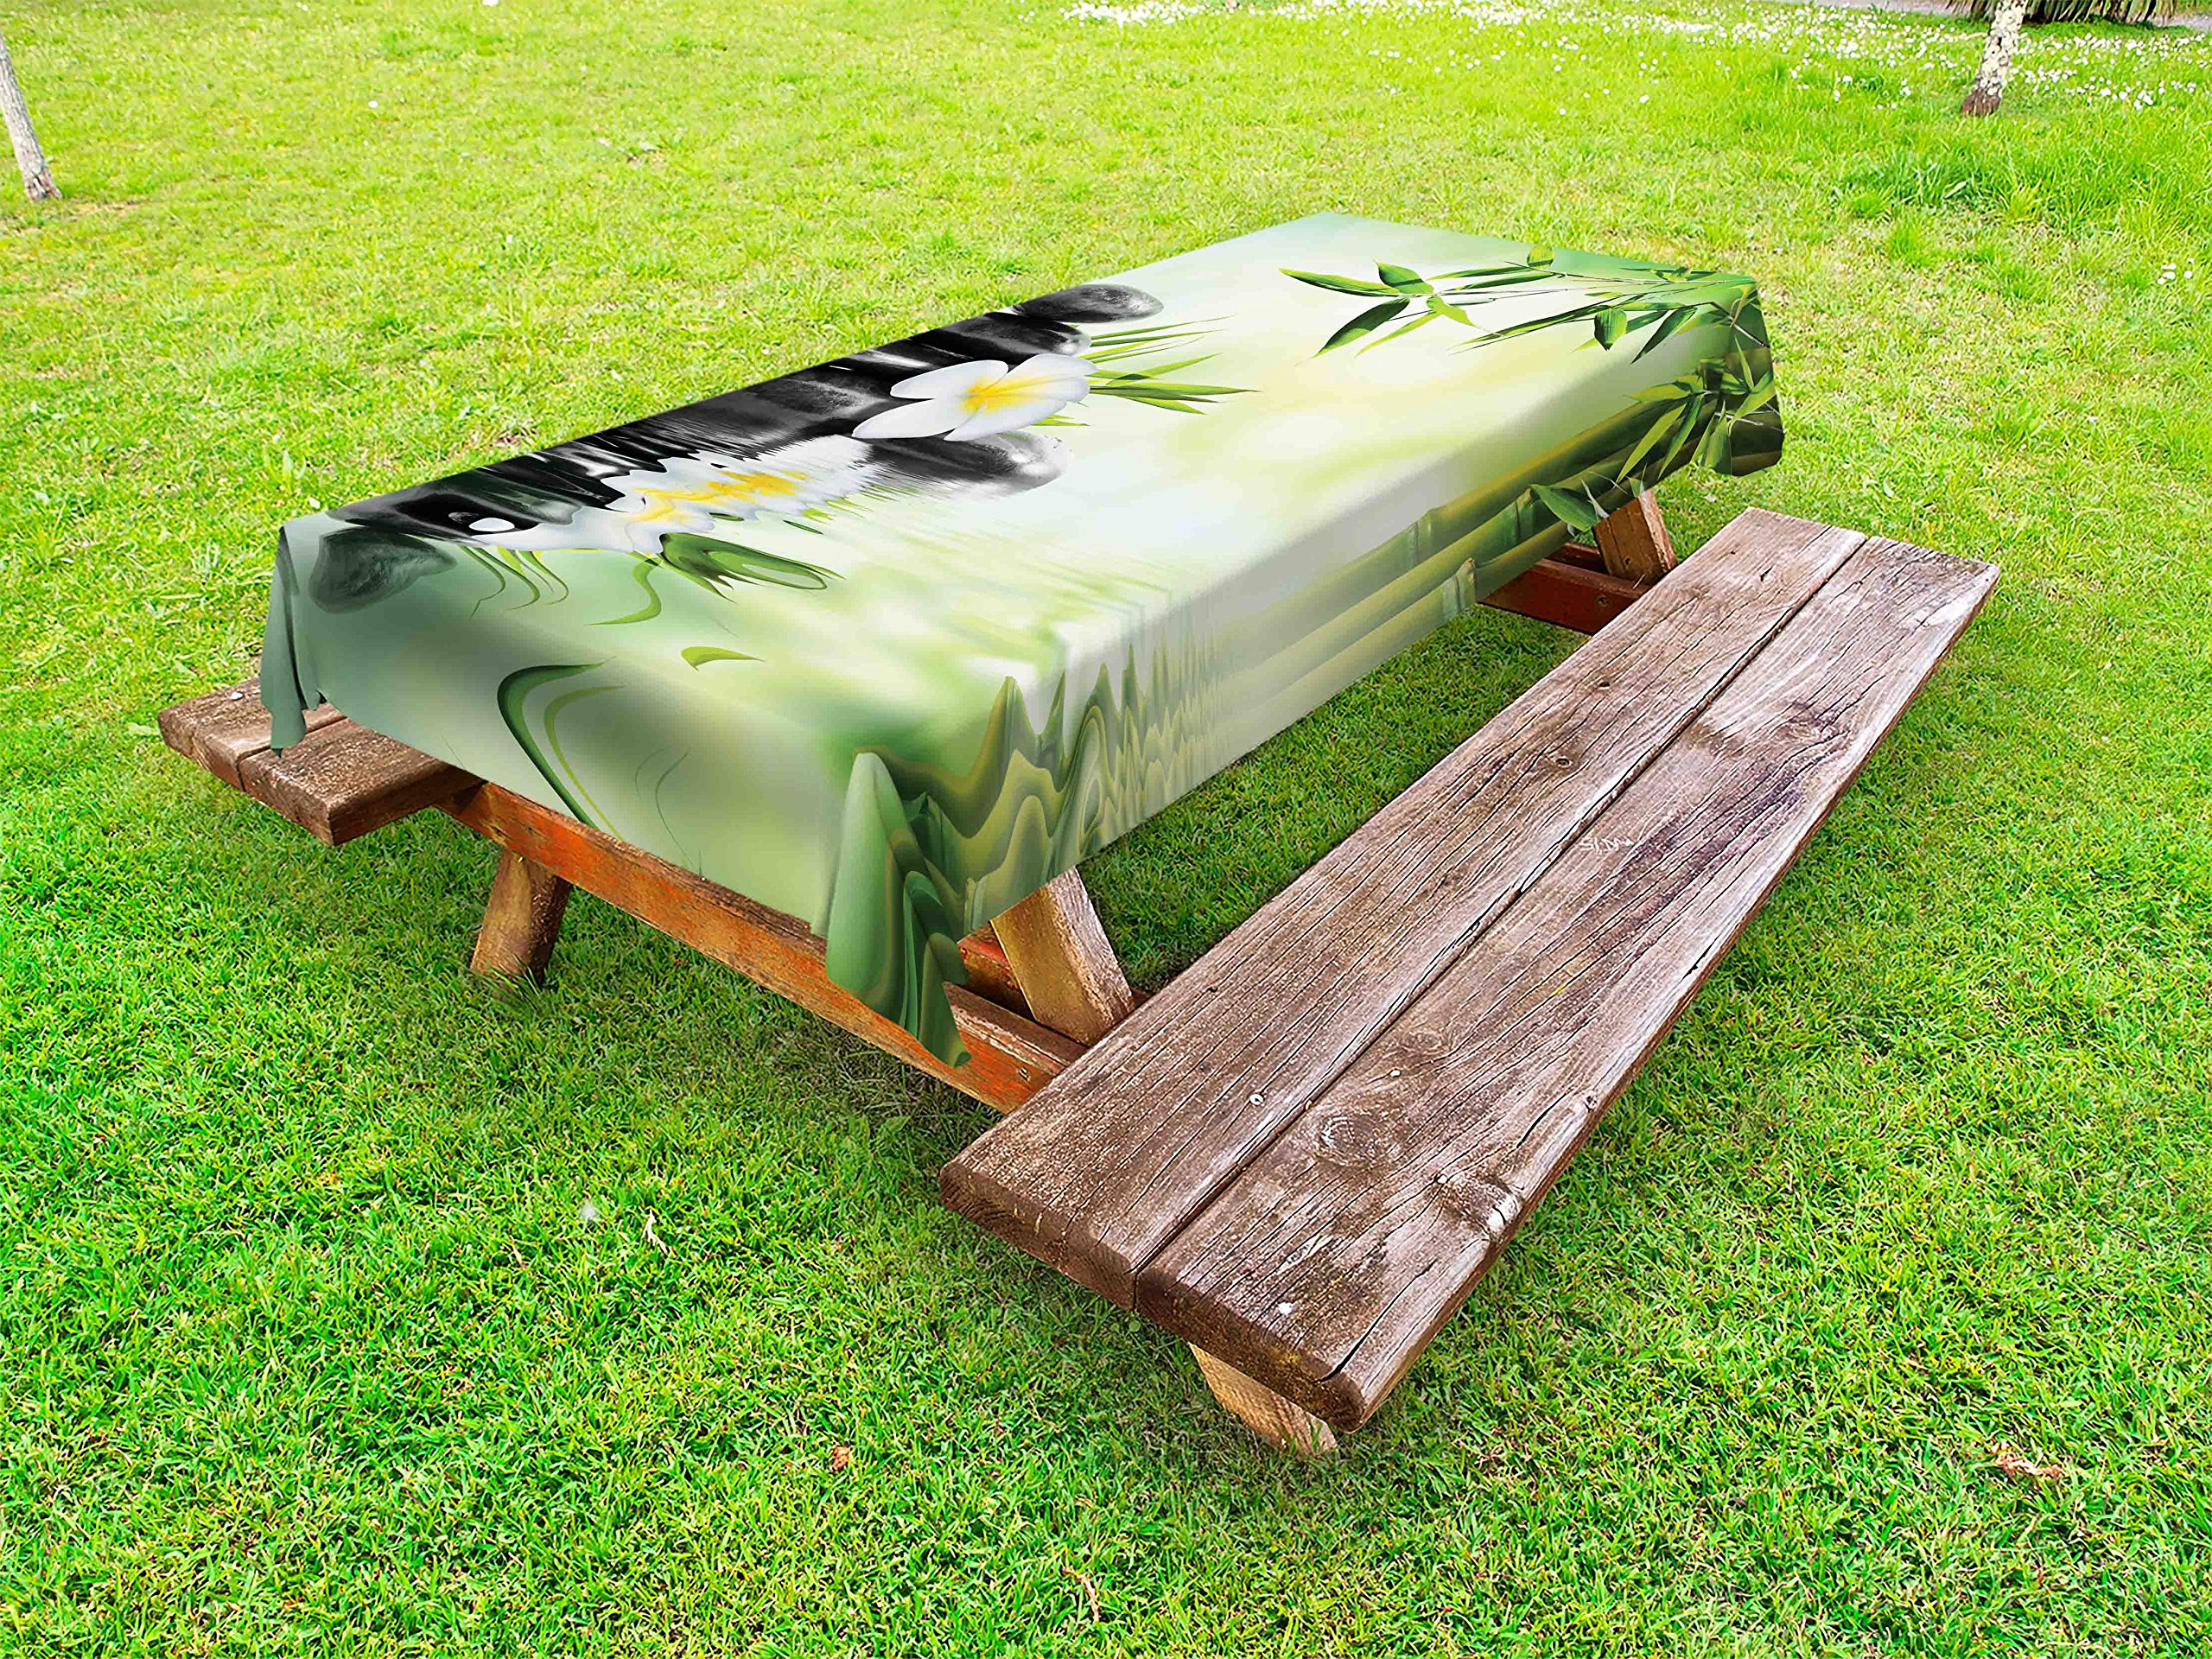 Ambesonne Spa Outdoor Tablecloth, Garden with Frangipani Bamboo Japanese Relaxation Resting Travel, Decorative Washable Picnic Table Cloth, 58 X 84 Inches, Pale Green Charcoal Grey Yellow